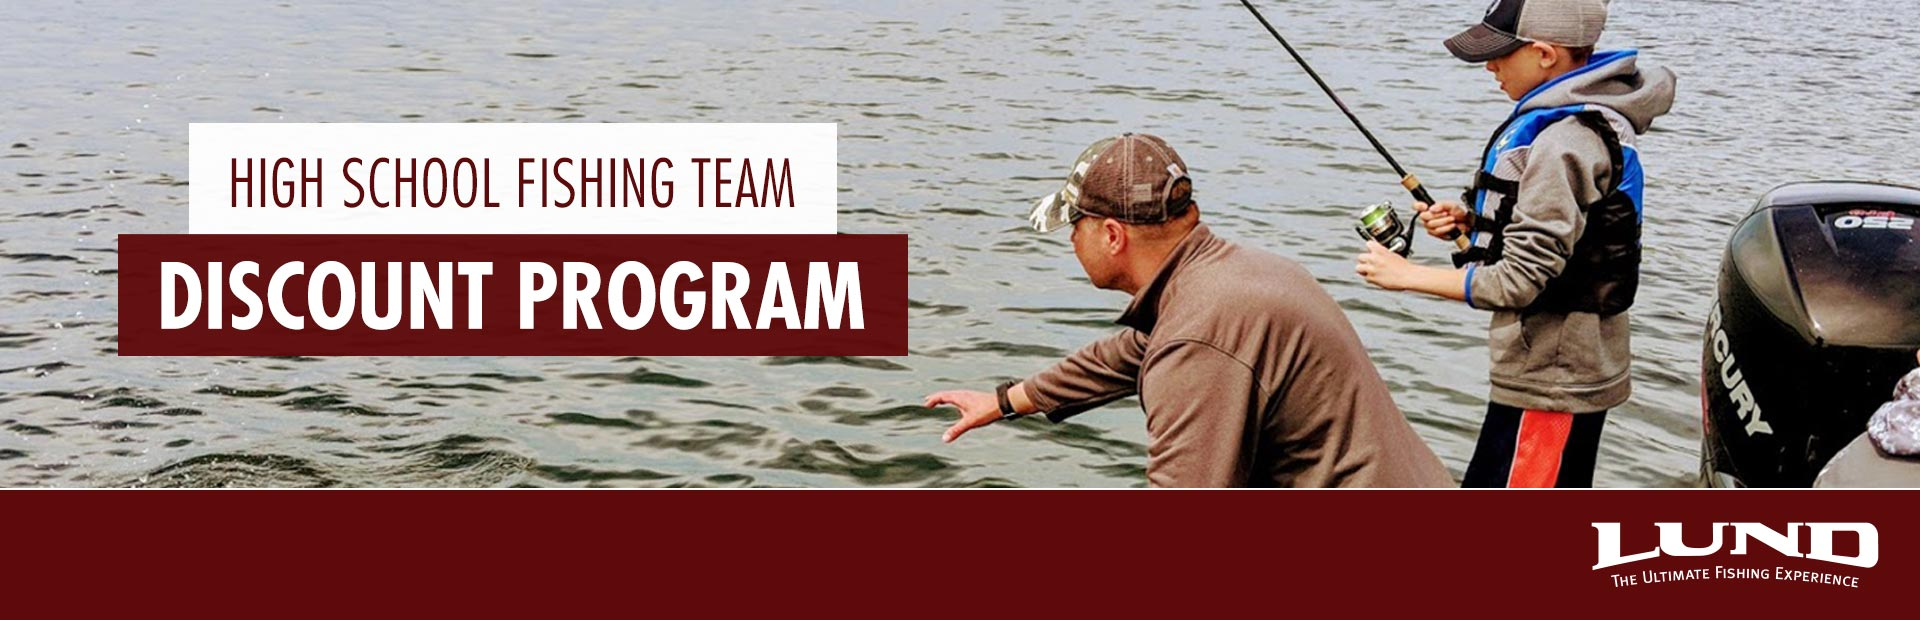 High School Fishing Team Discount Program